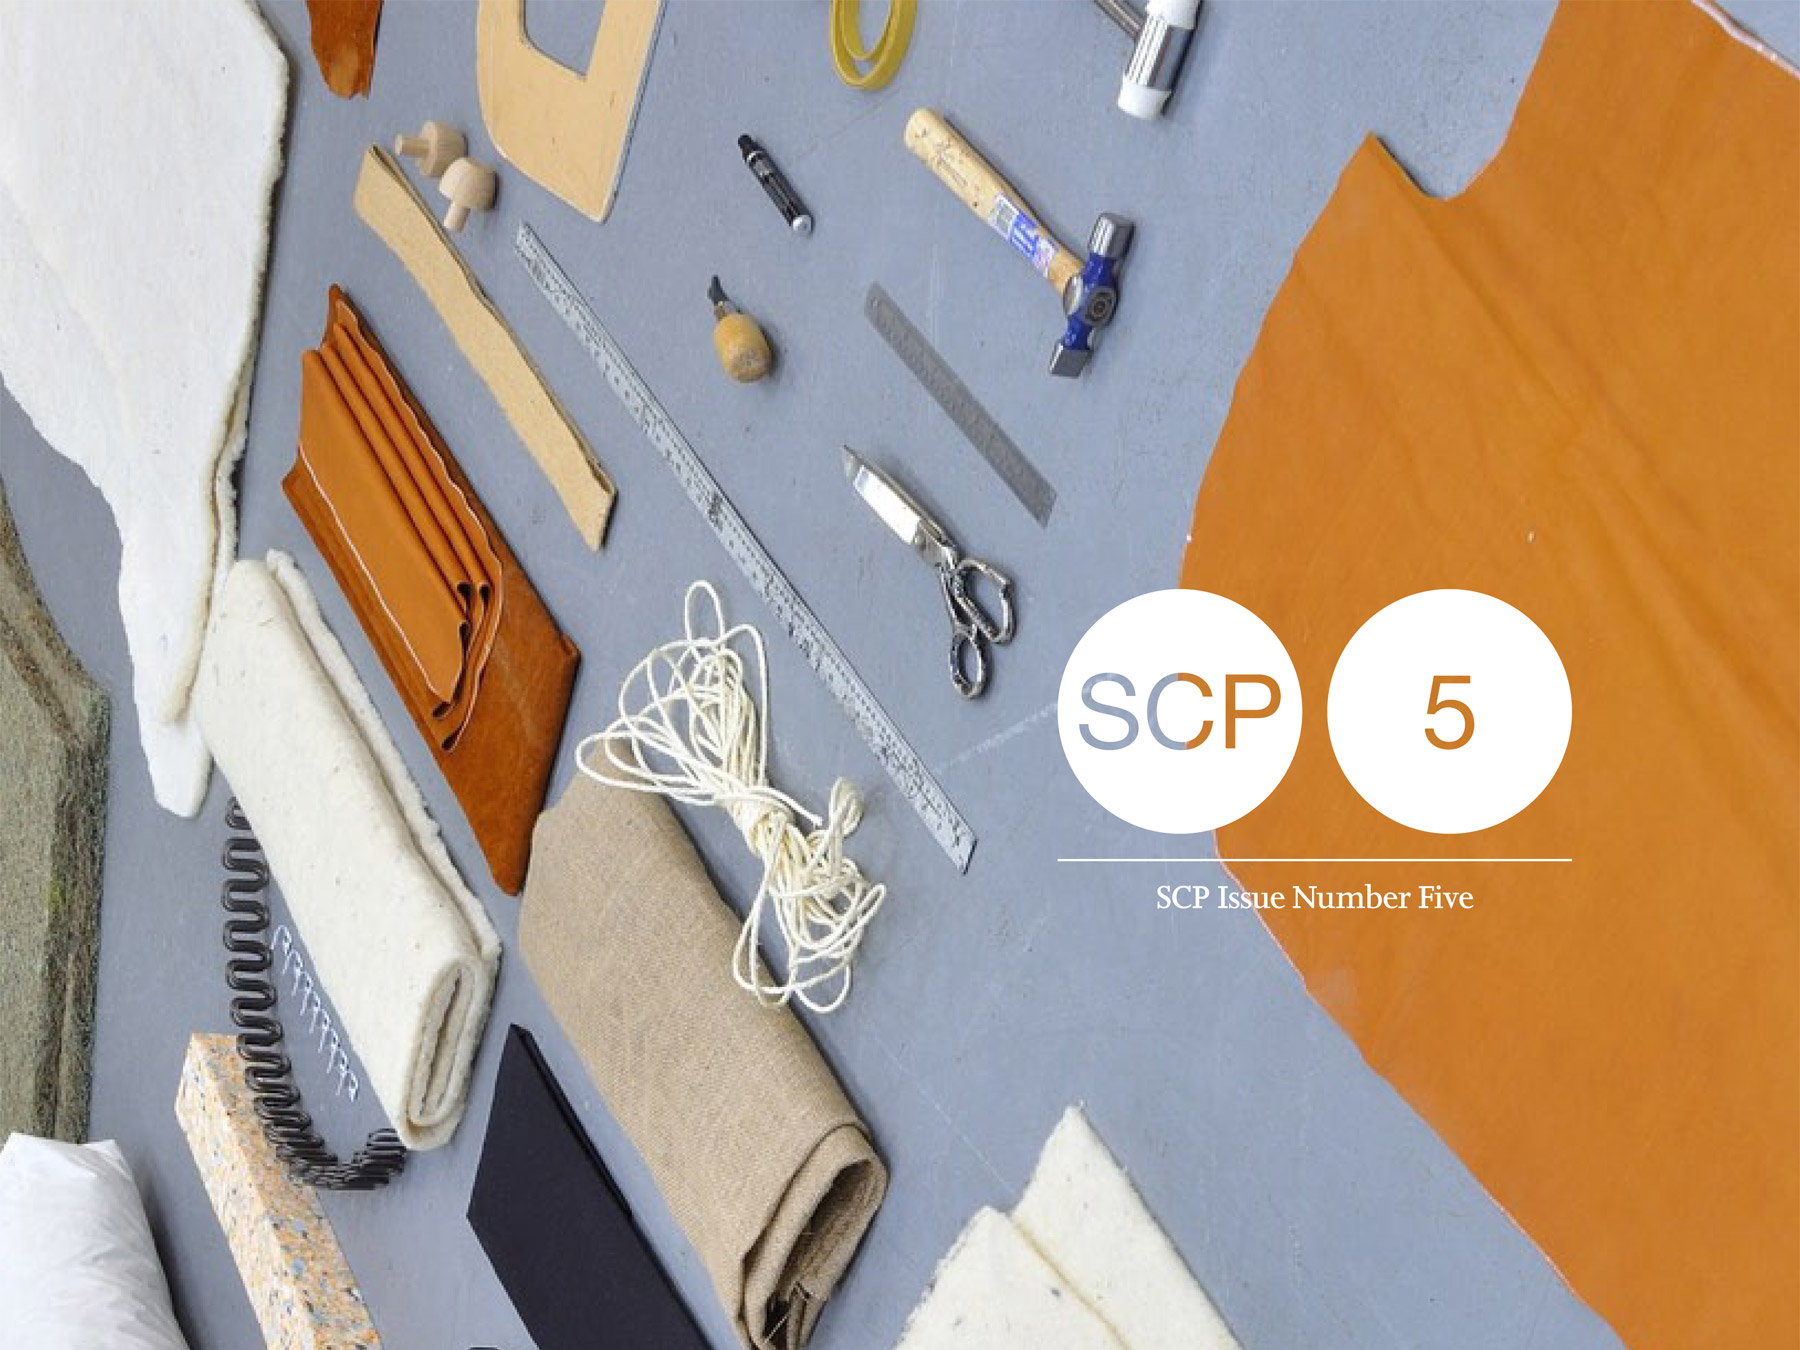 SCP_Issue_Number_Five_2014